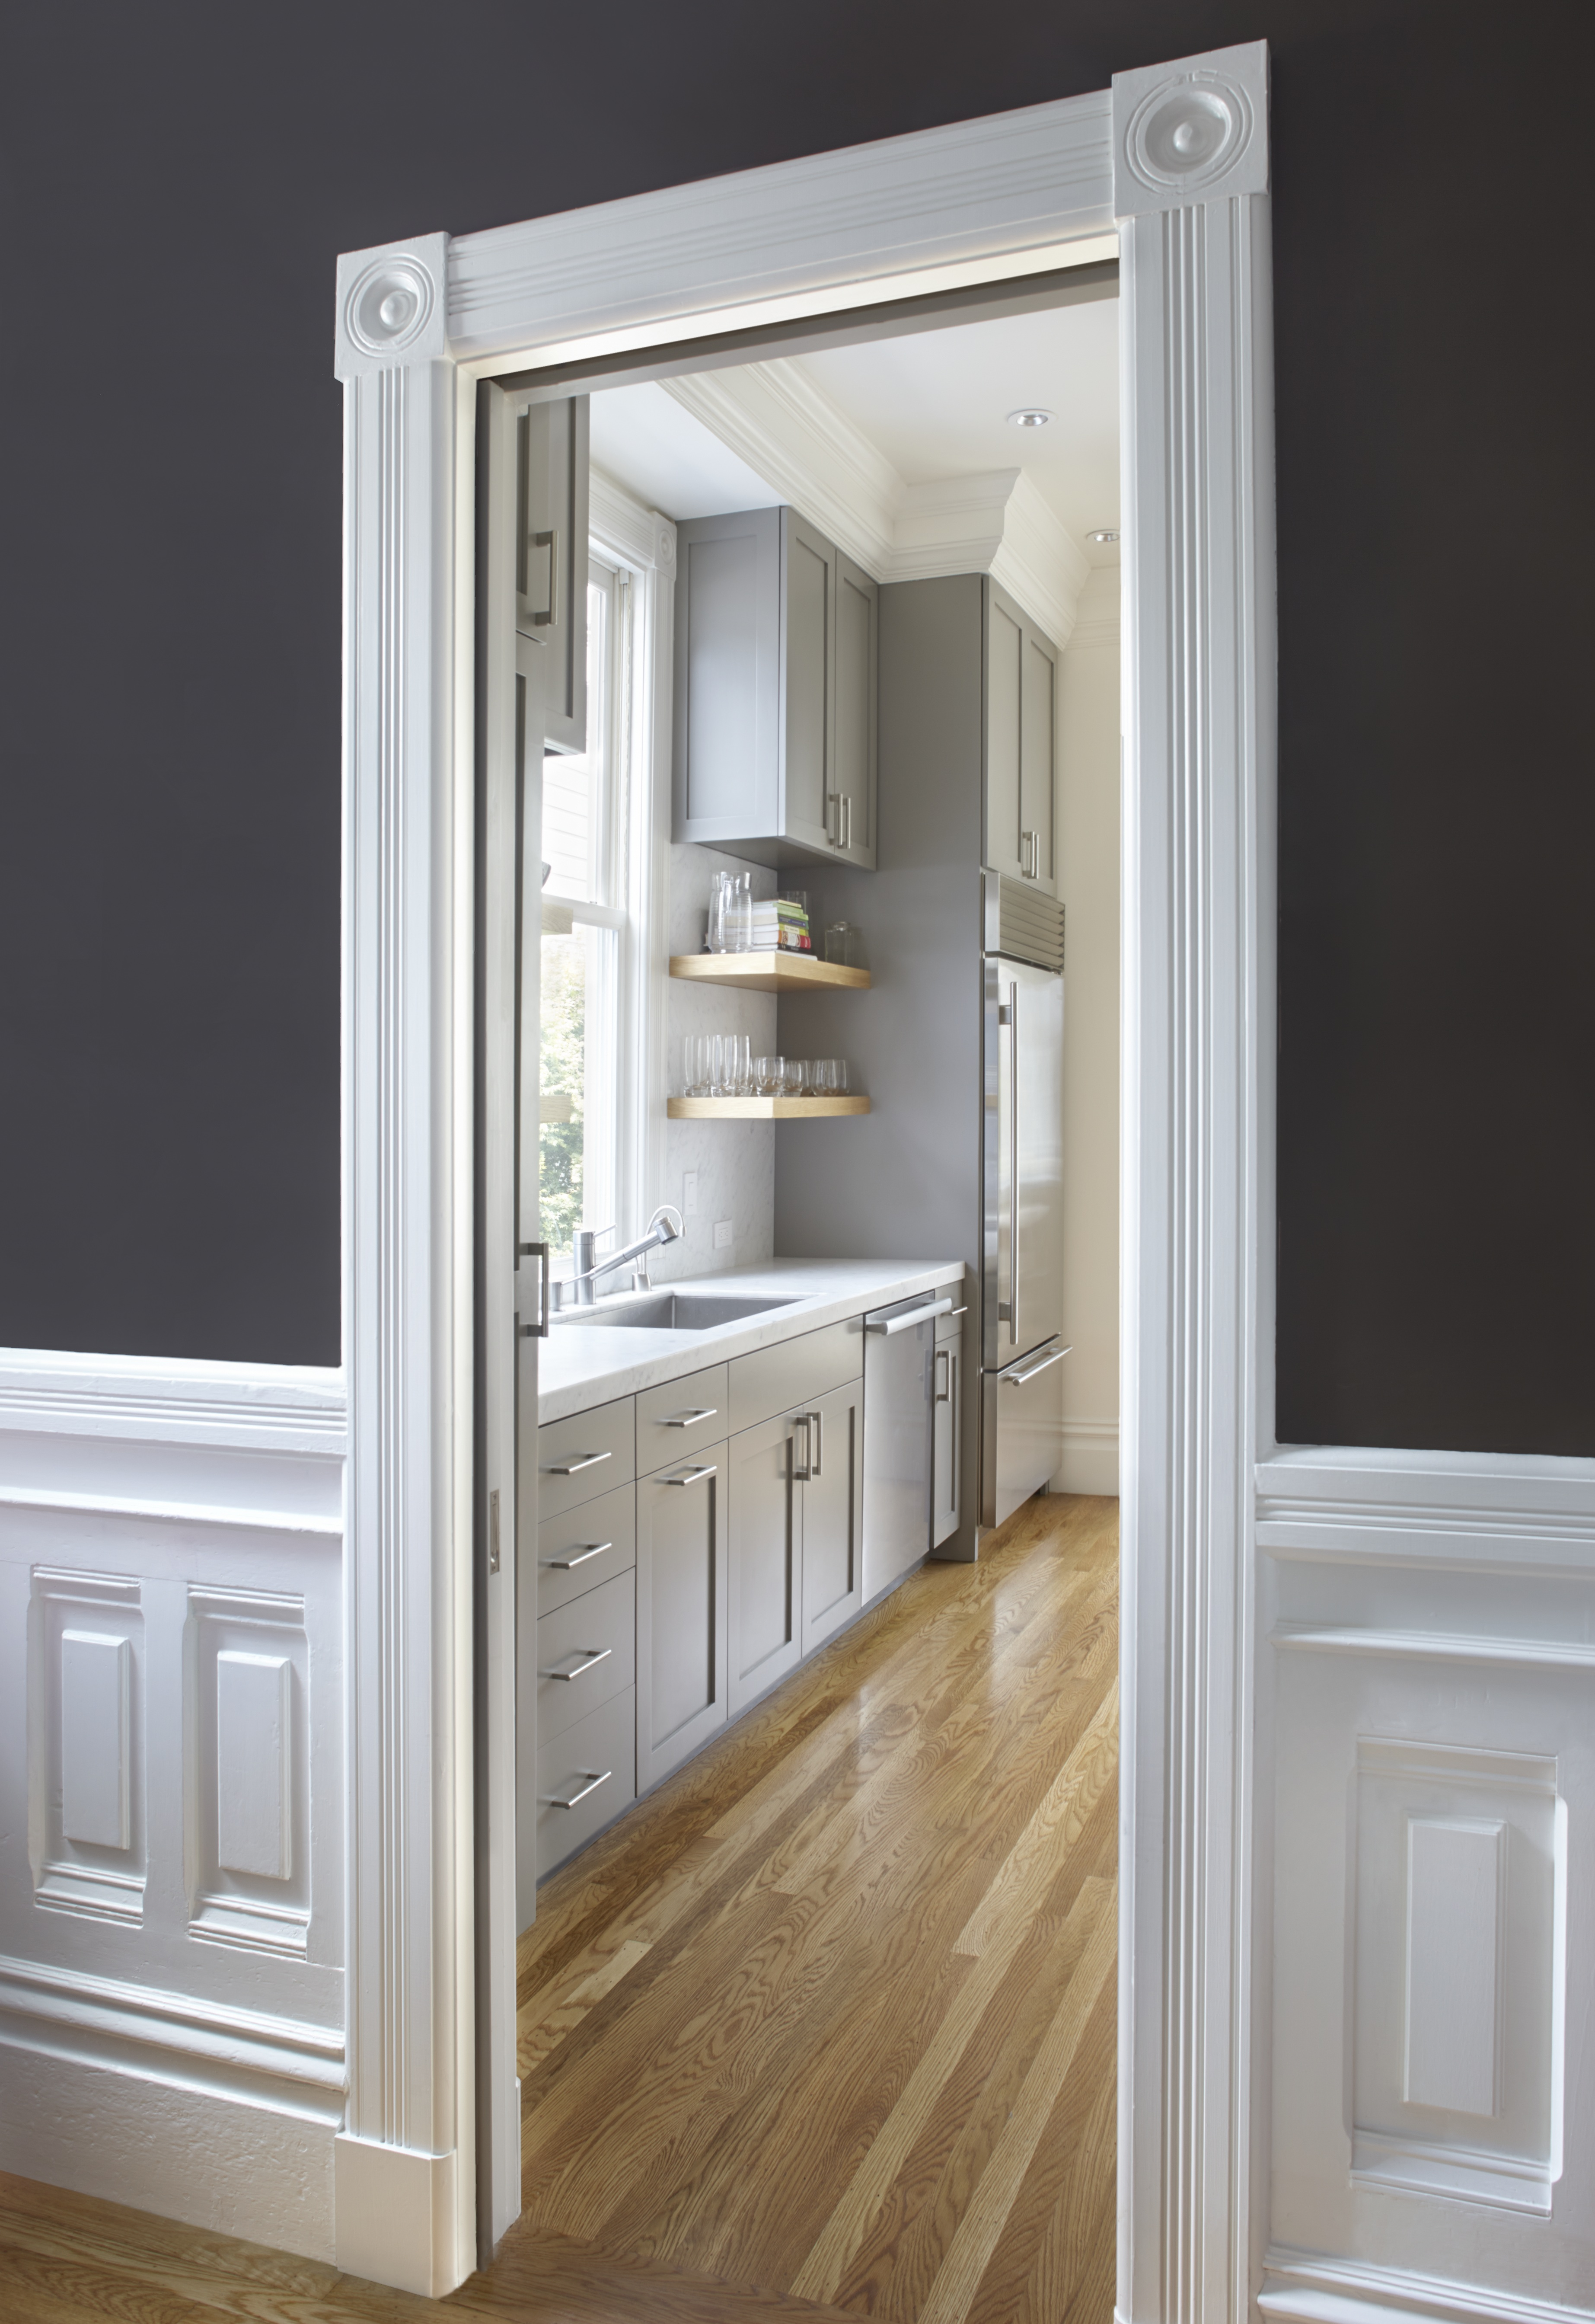 Edwardian Kitchen Loro Designs Pacific Heights Kitchen And The 21st Century Edwardian